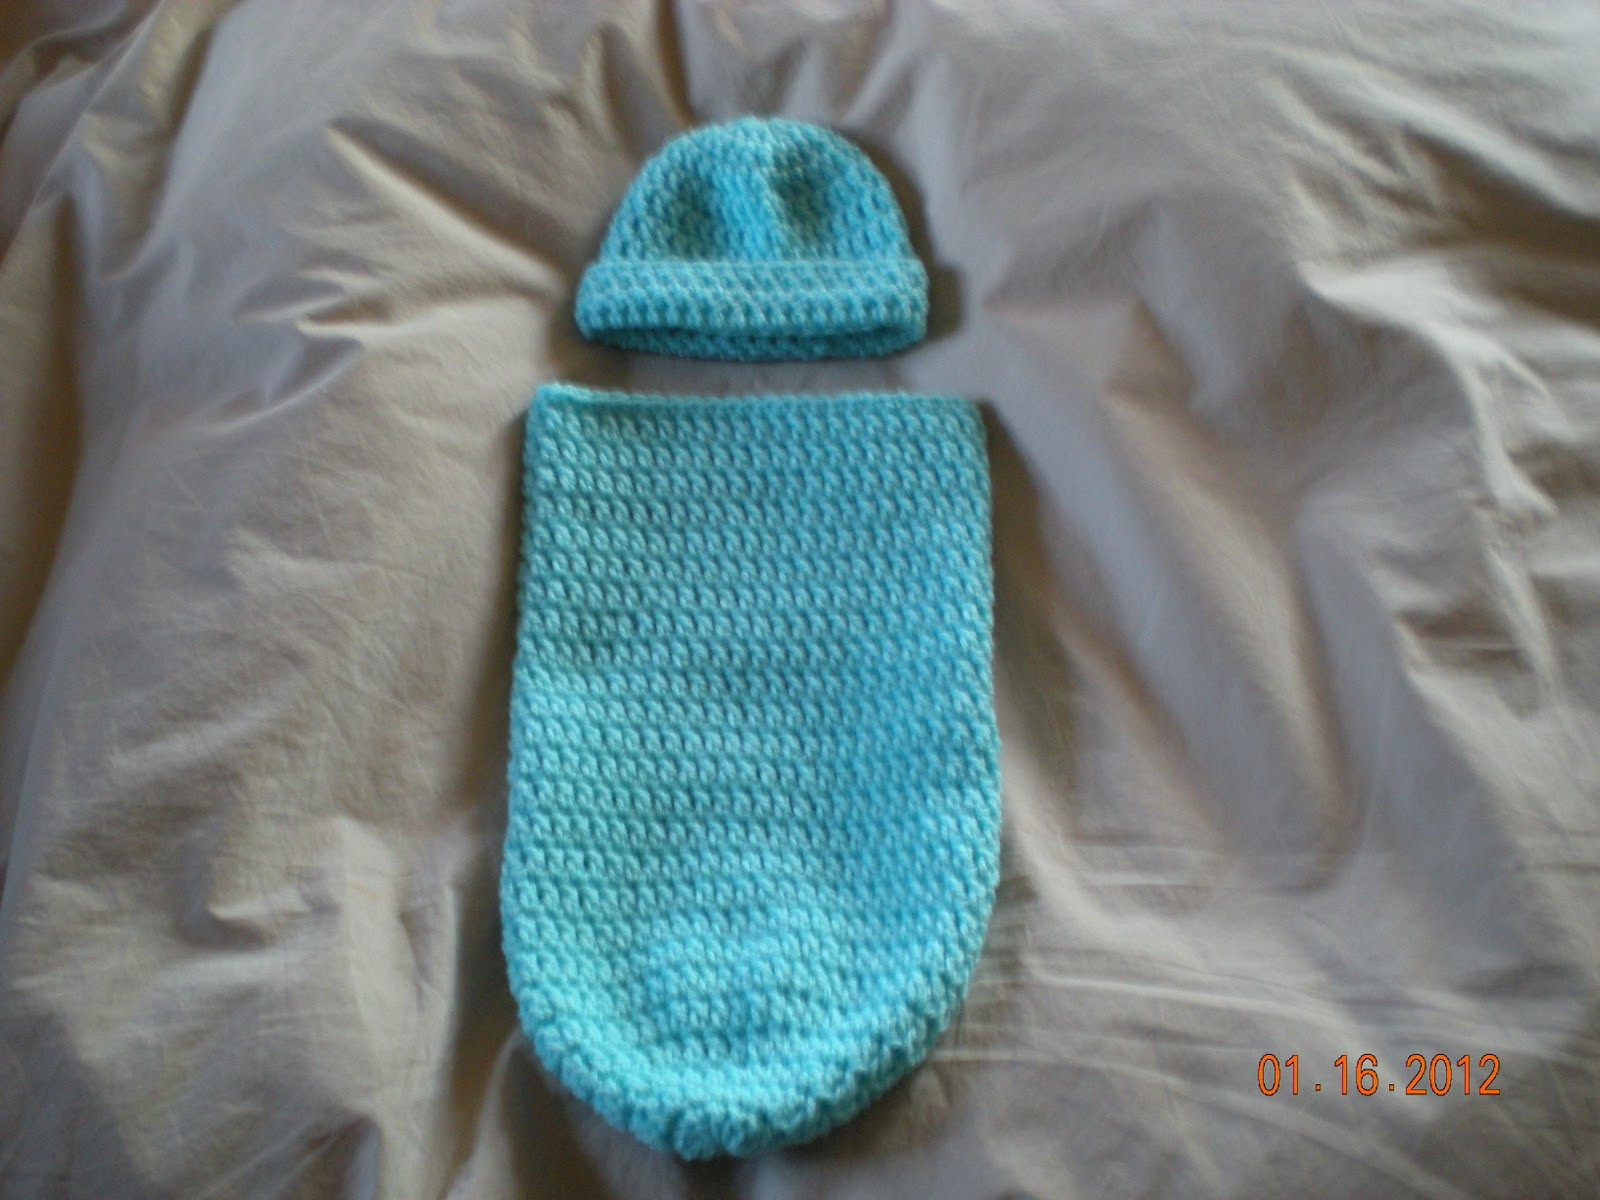 Best Of Bella S Babies Preemie Cuddler & Hat Snuggly Wuggly Yarn Of Amazing 49 Photos Snuggly Wuggly Yarn